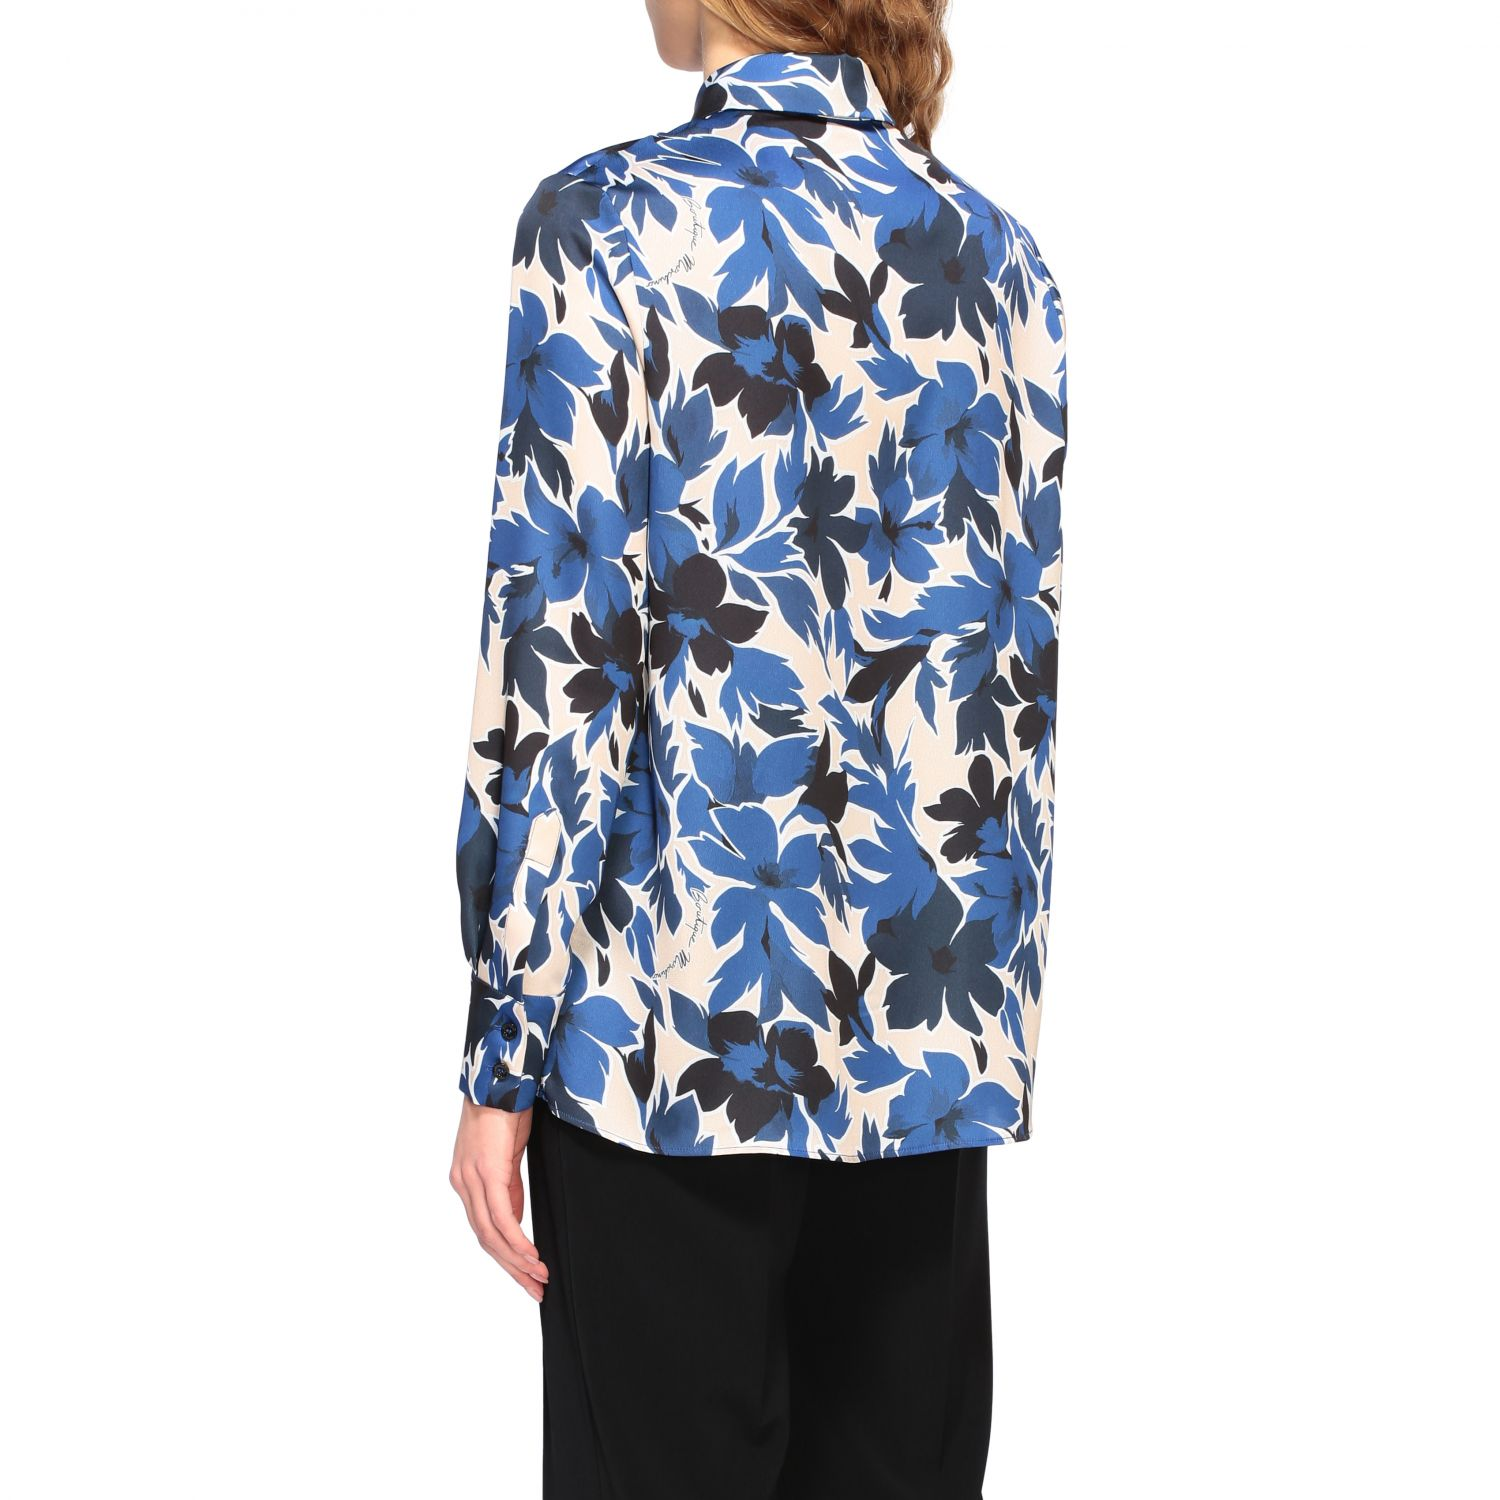 Shirt Boutique Moschino: Shirt women Boutique Moschino blue 3